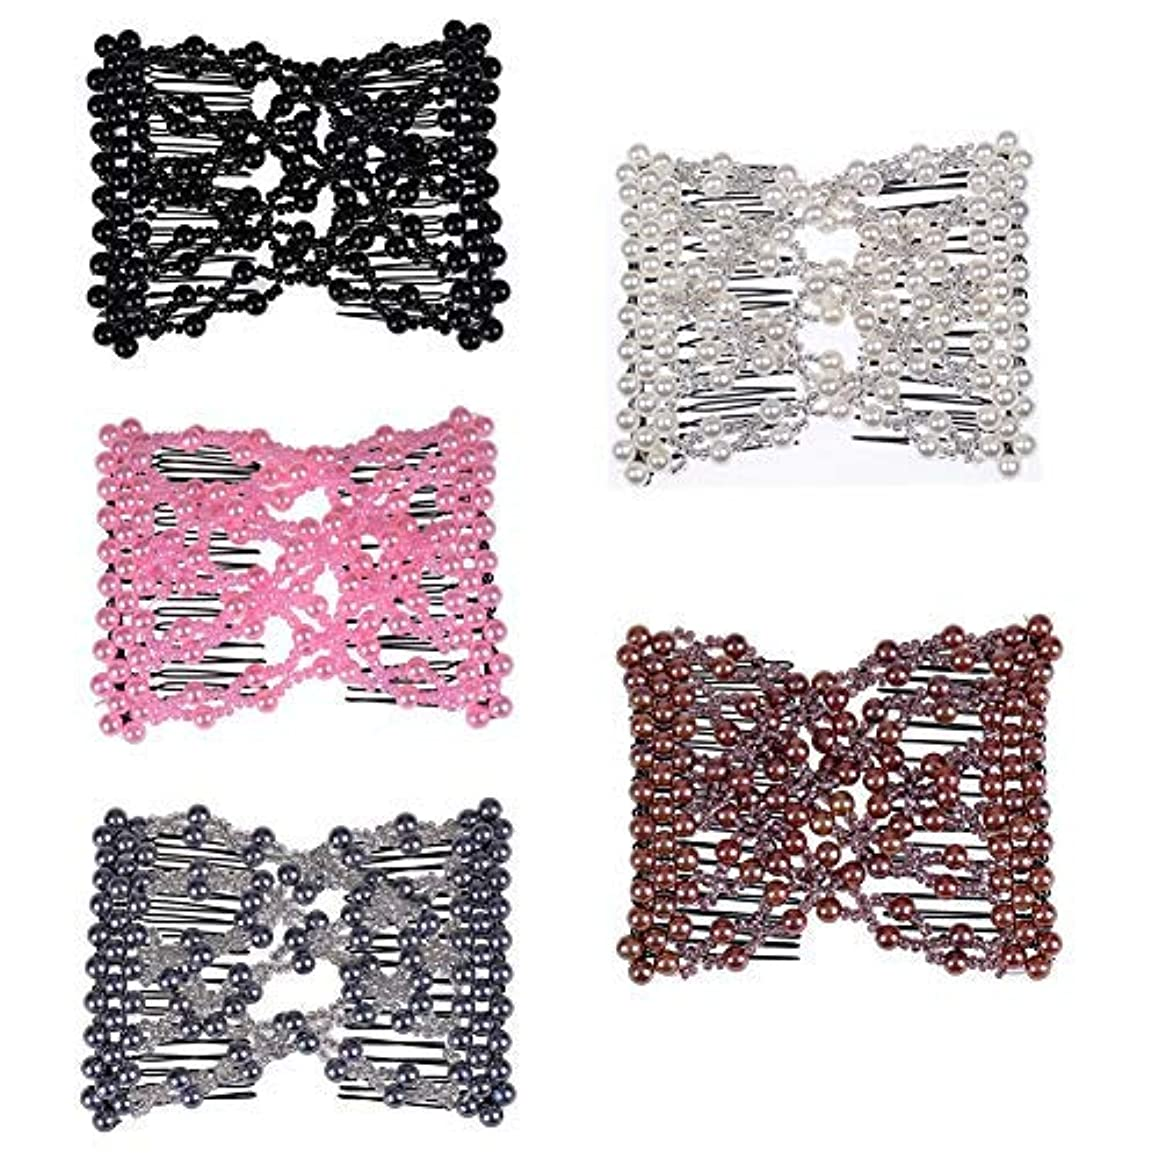 壊滅的なオーストラリア人修羅場Casualfashion 5Pcs Ez Stretch Beaded Hair Combs Double Magic Slide Metal Comb Clip Hairpins for Women Hair Styling...